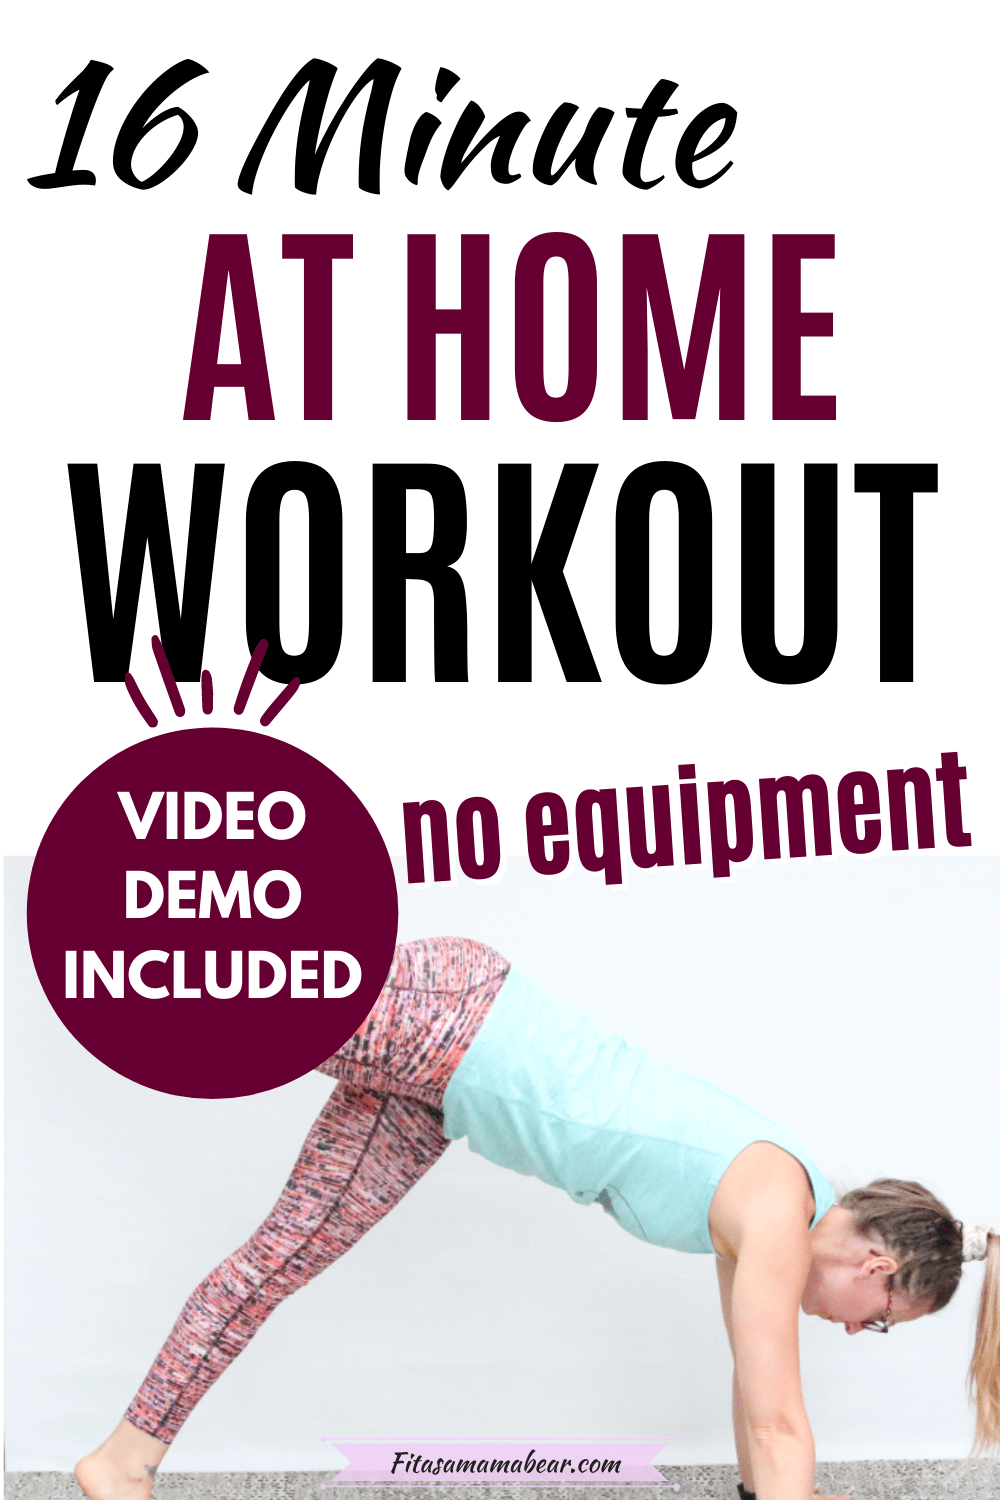 Pinterest image with text: woman in blue shirt and orange shirt performing a bodyweight exercise as part of an EMOM workout